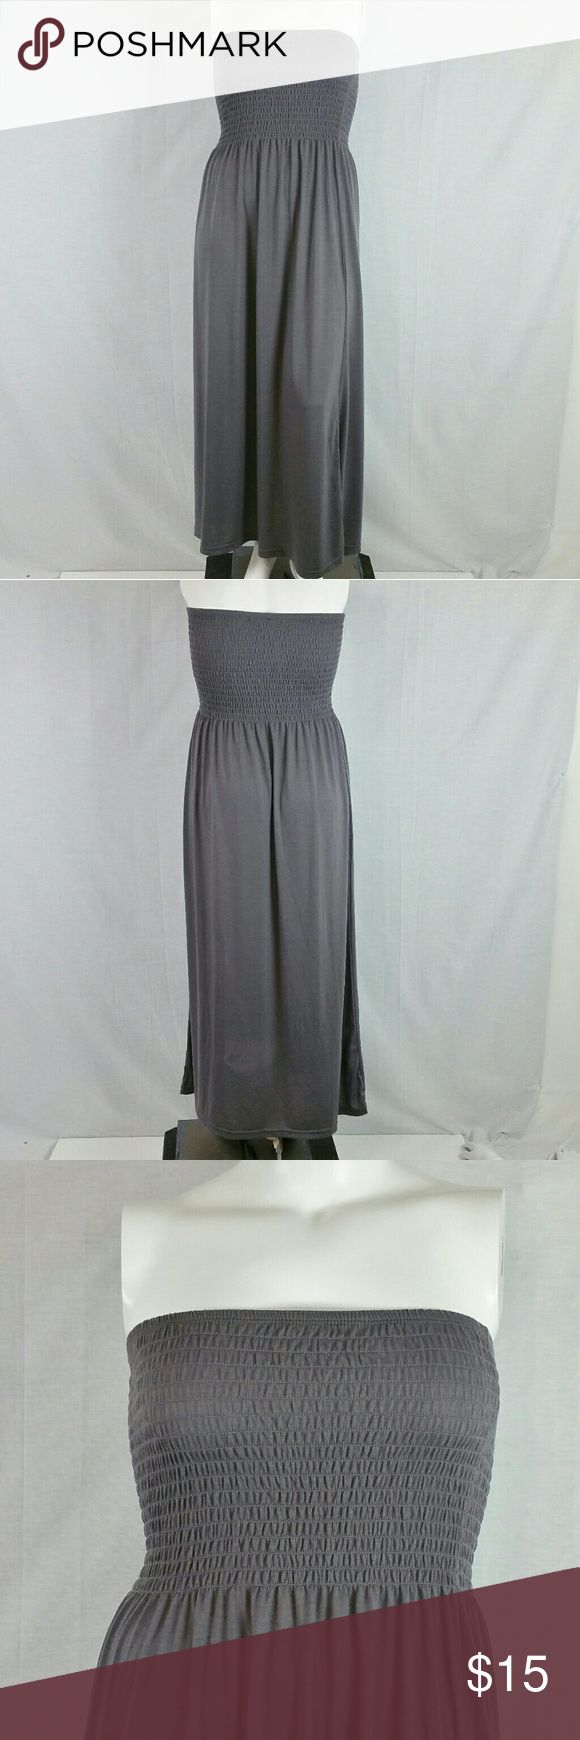 "Gray Smocked Tube Maxi Dress Size 2X Bust 30"" around not stretched & length 49"". 62% polyester 33% rayon 5% spandex. Add to a bundle to receive 20% off 3 or more items. Offers welcomed. Bin f Love Ari Dresses Maxi"